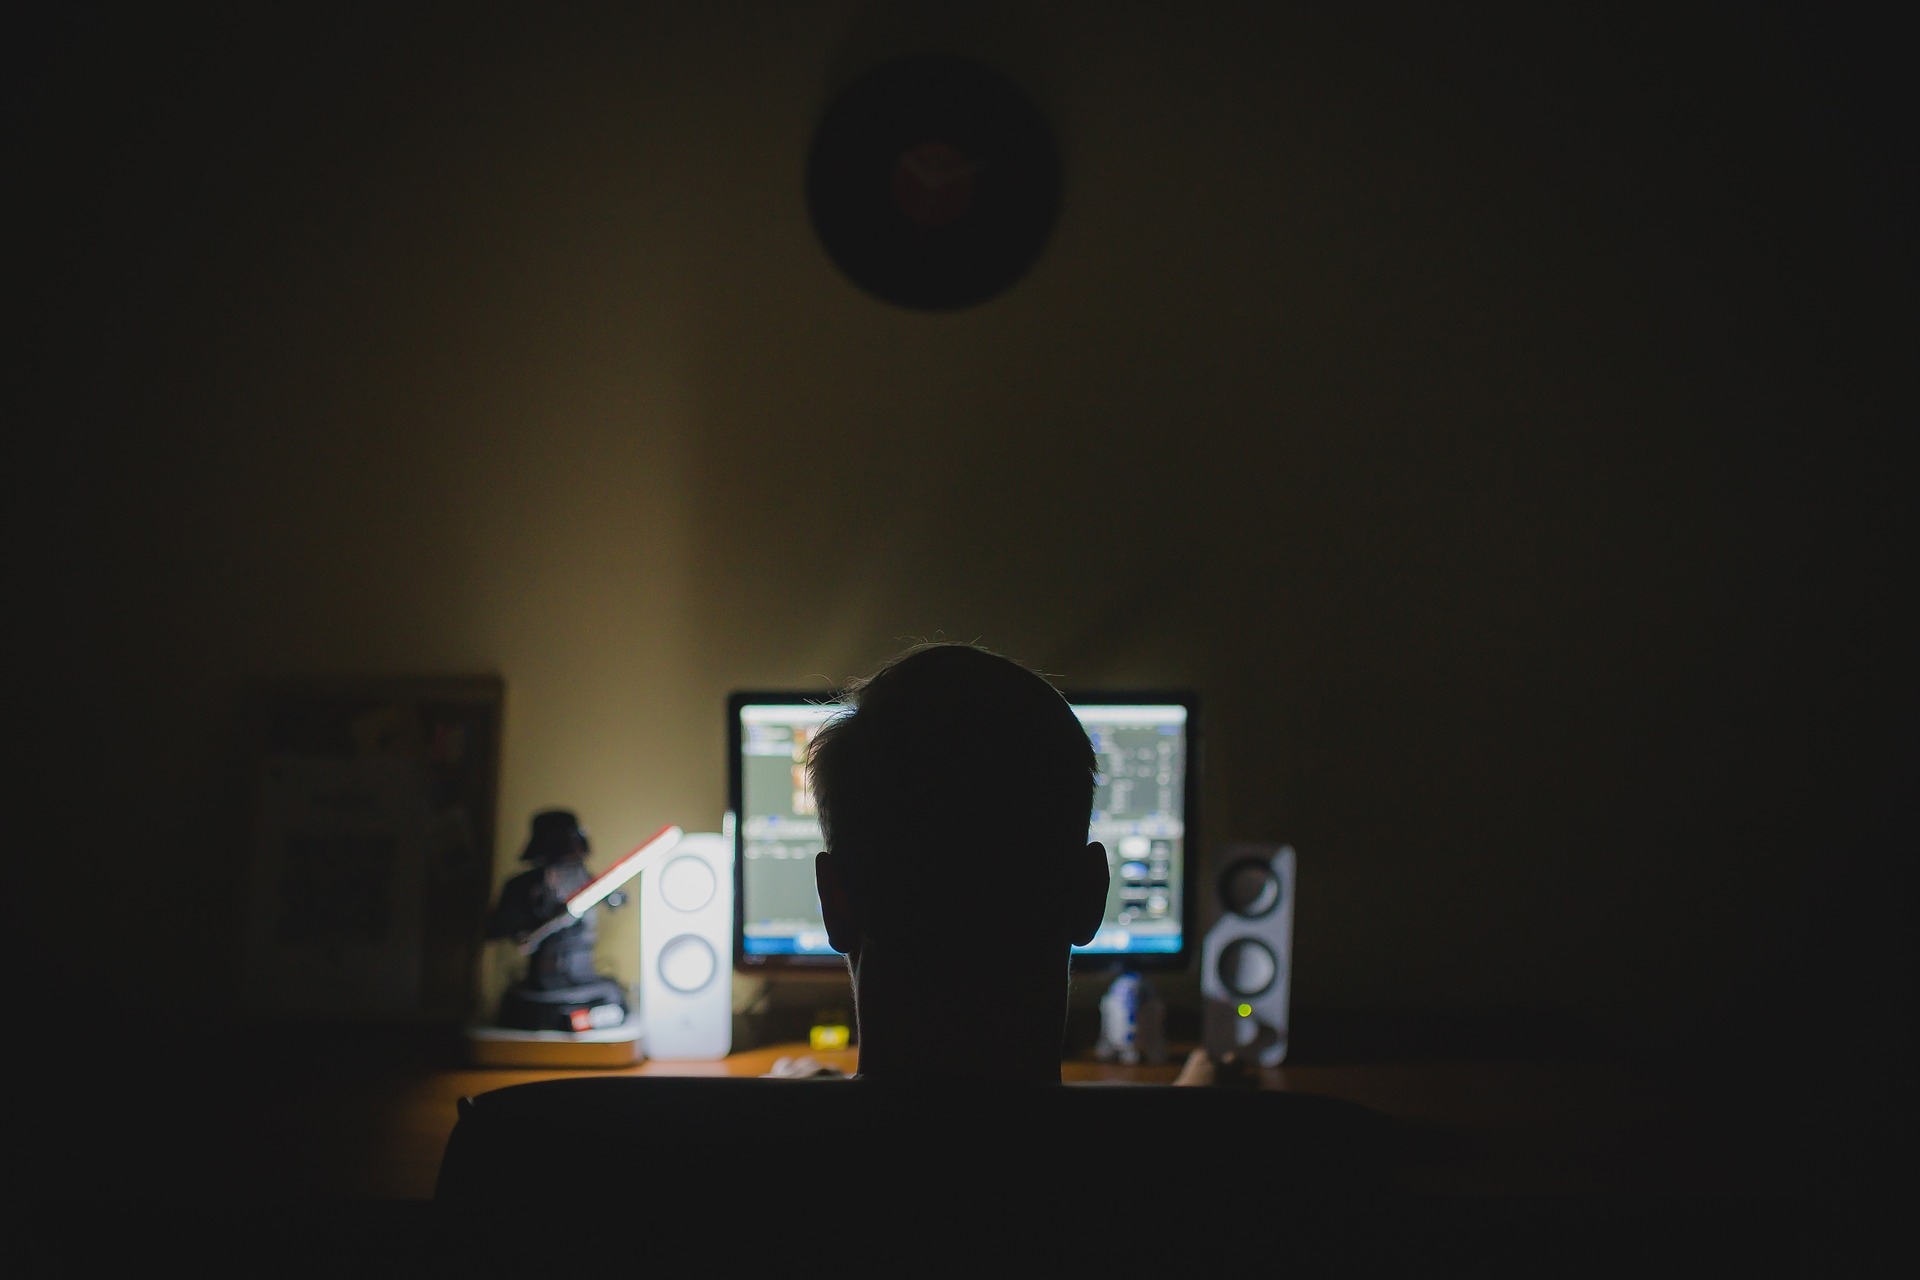 man in the dark illuminated by computer light